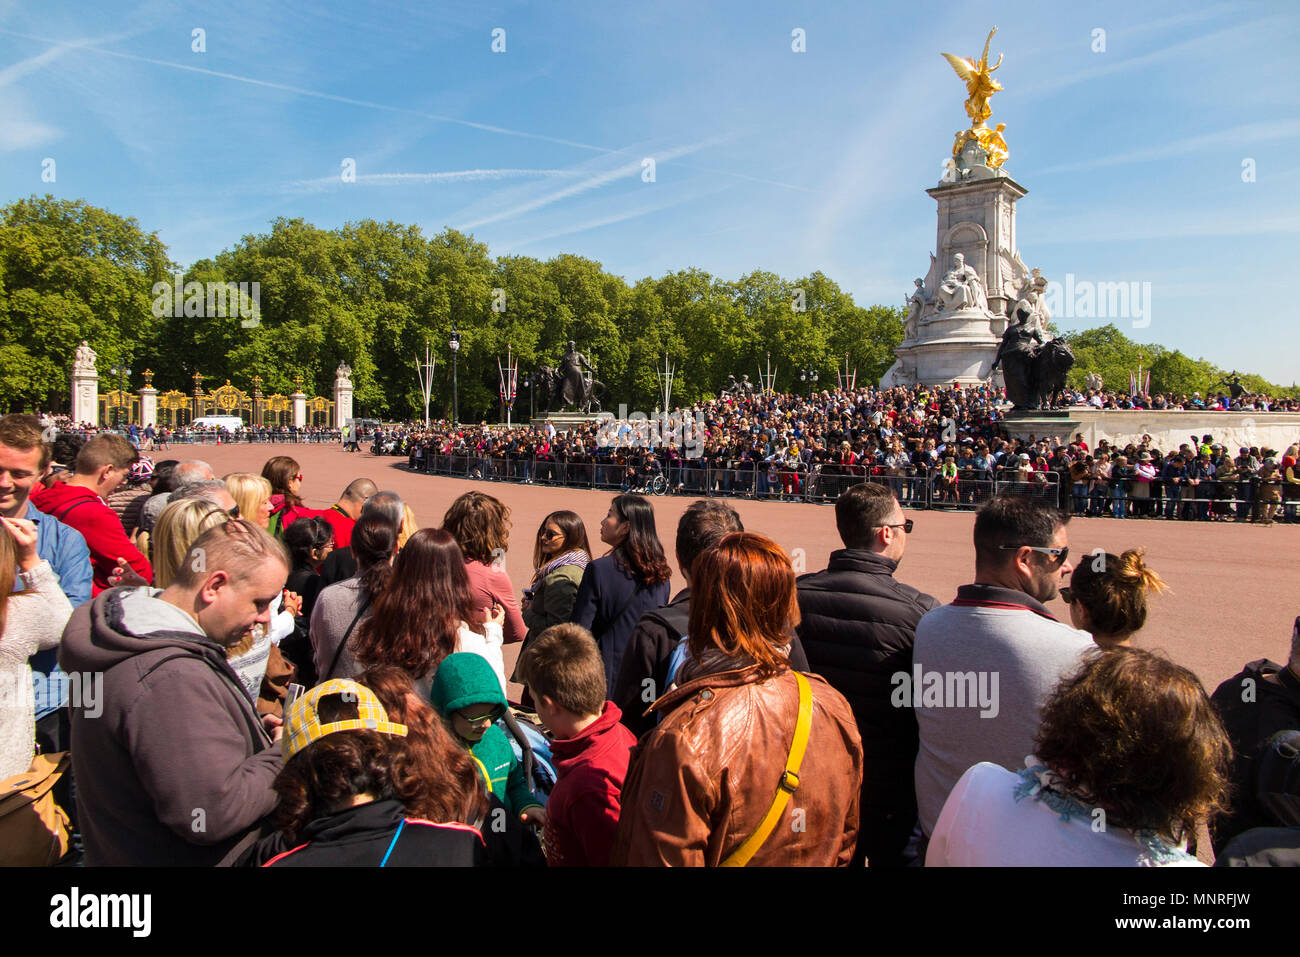 Crowds await the Changing of the Colour at Buckingham Palace, London - Stock Image